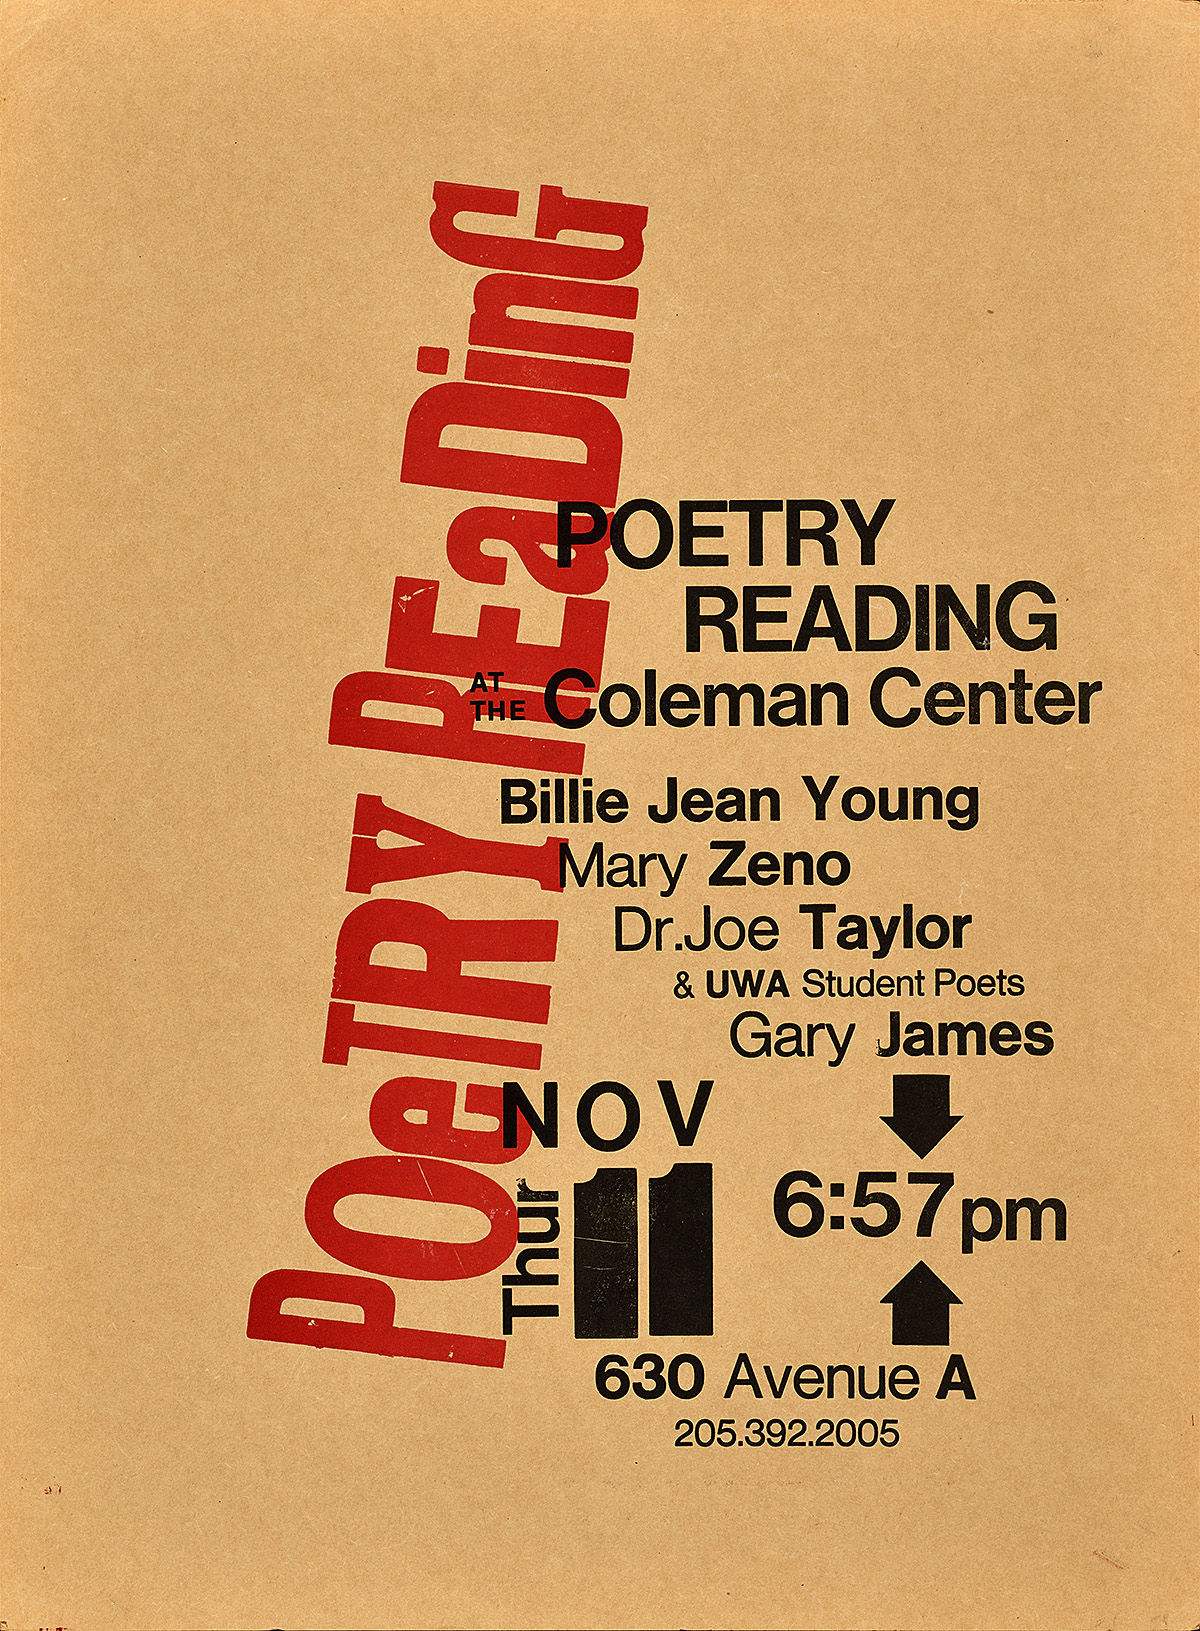 letterpress poster with a raw paper background. red text running diagonally reads Poetry Reading. Black text running horizontally explains the event details.